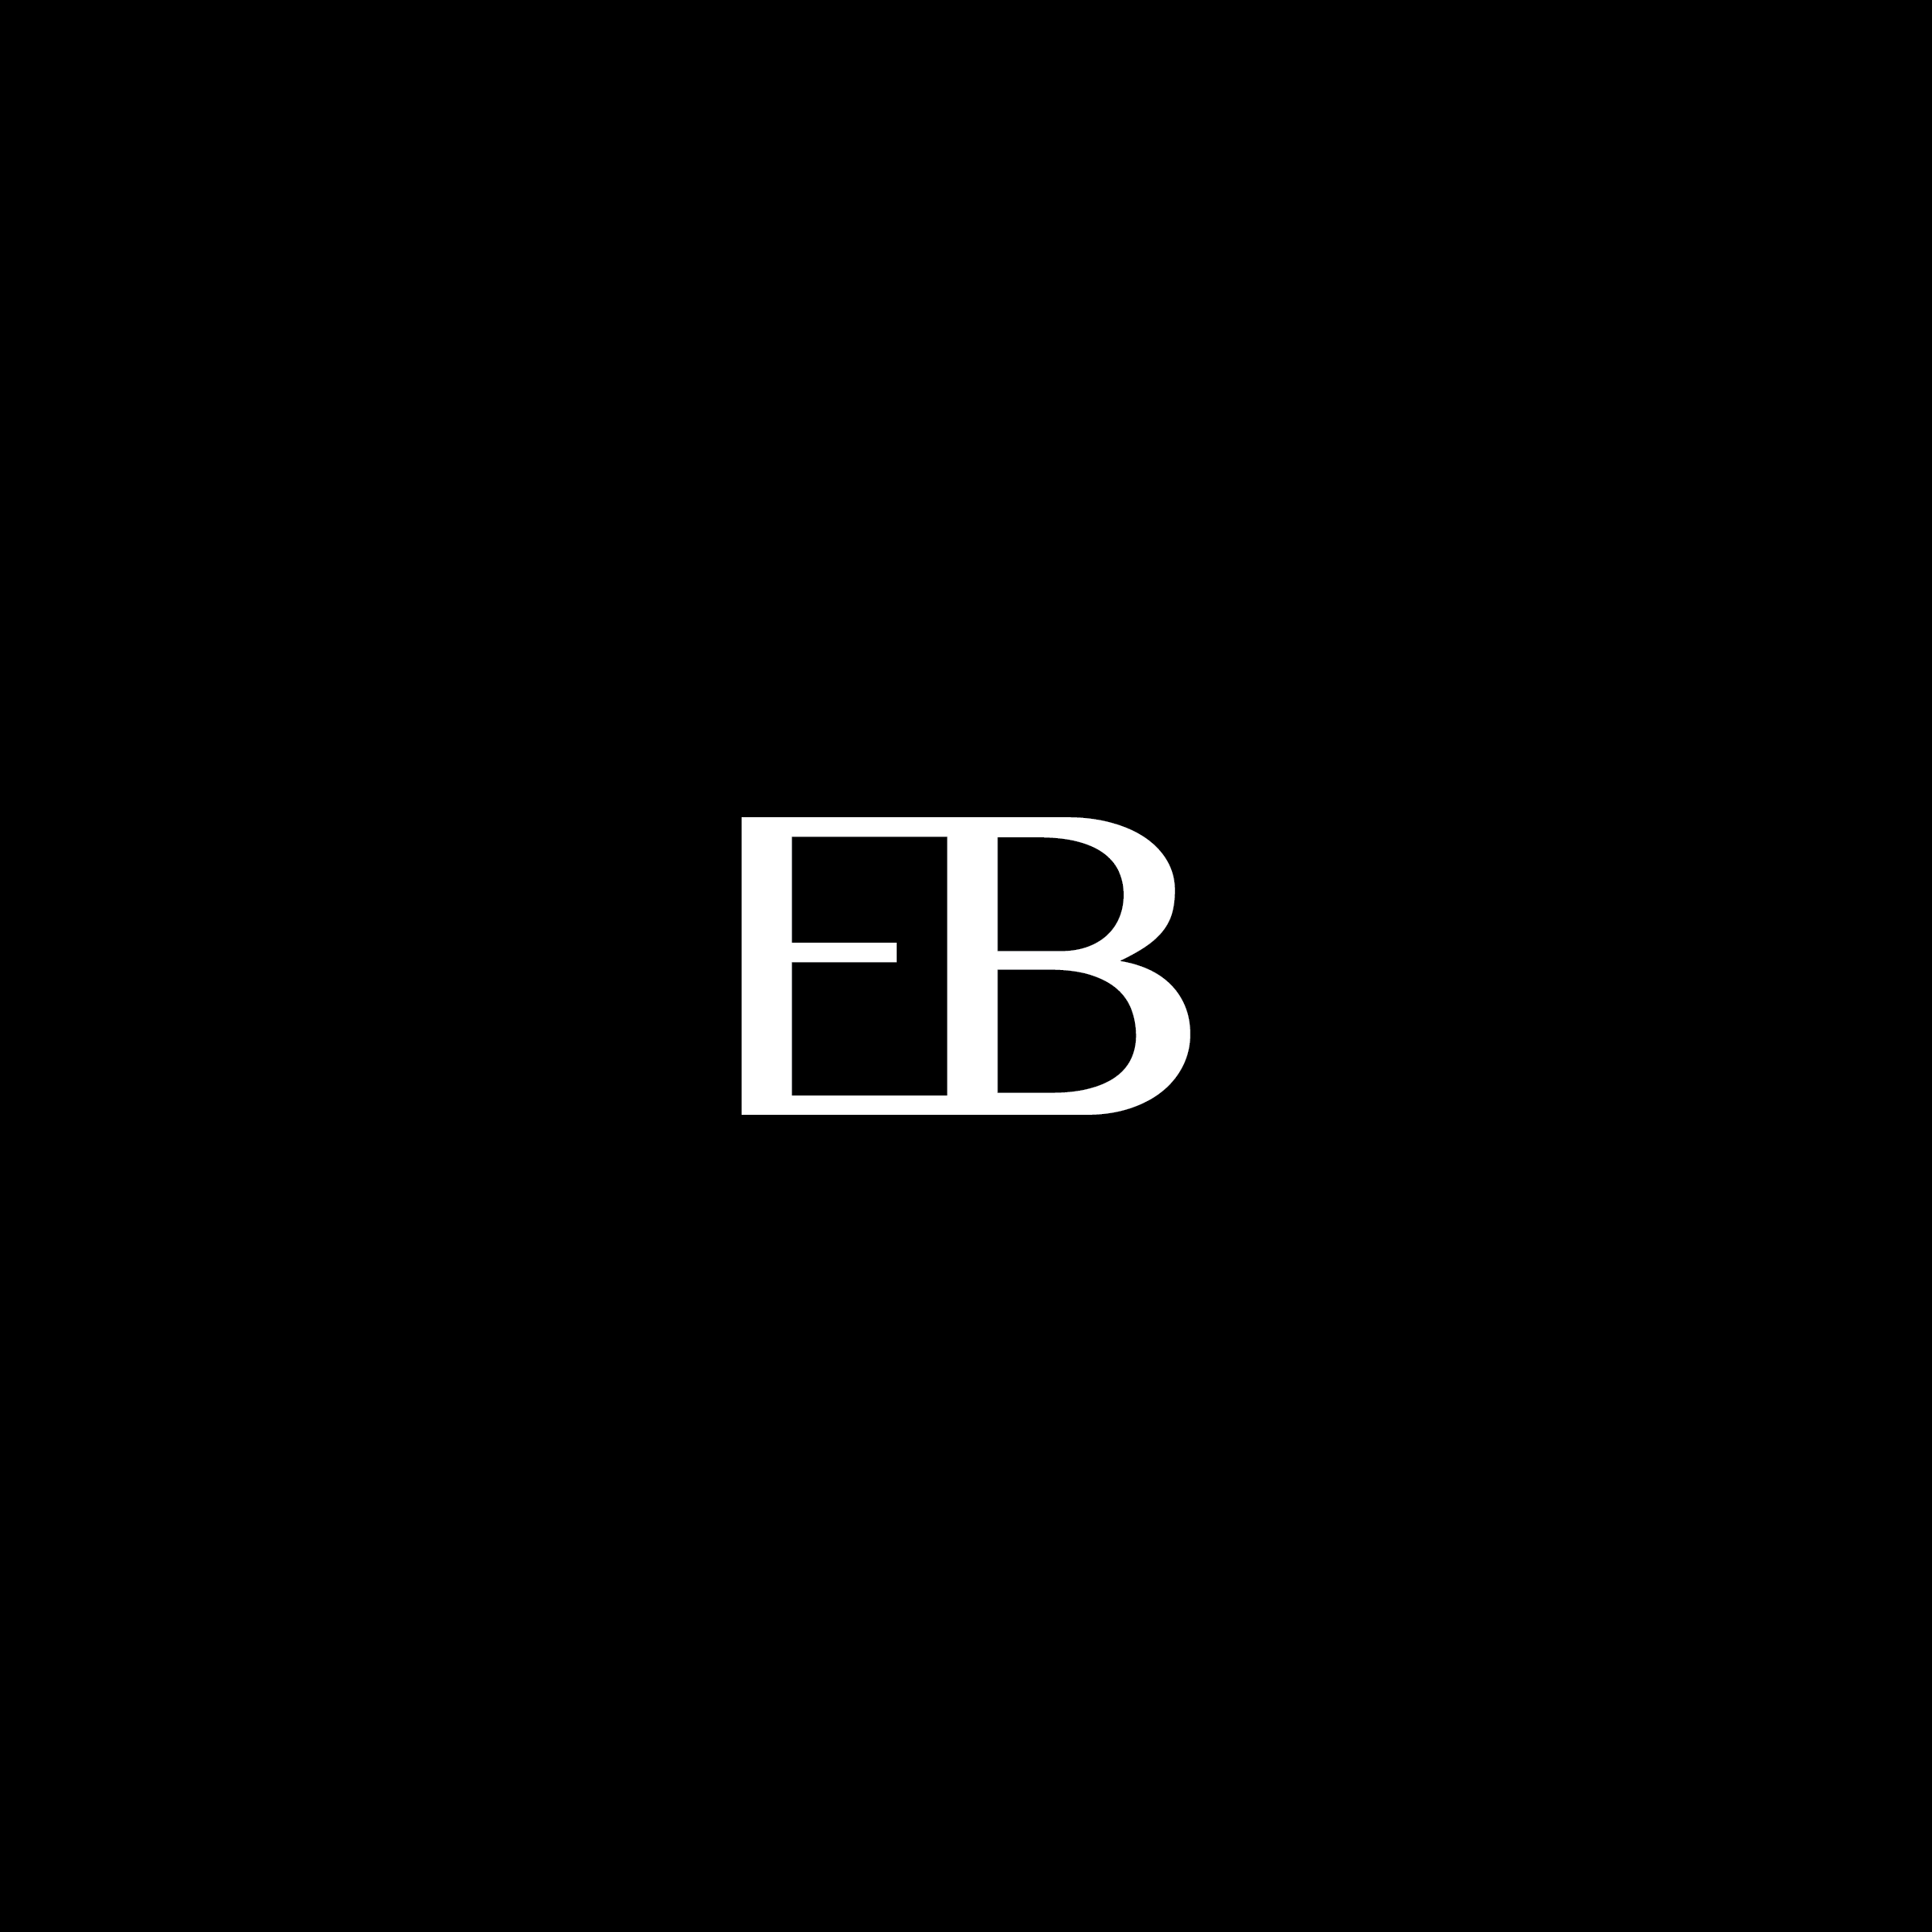 EB submark.png